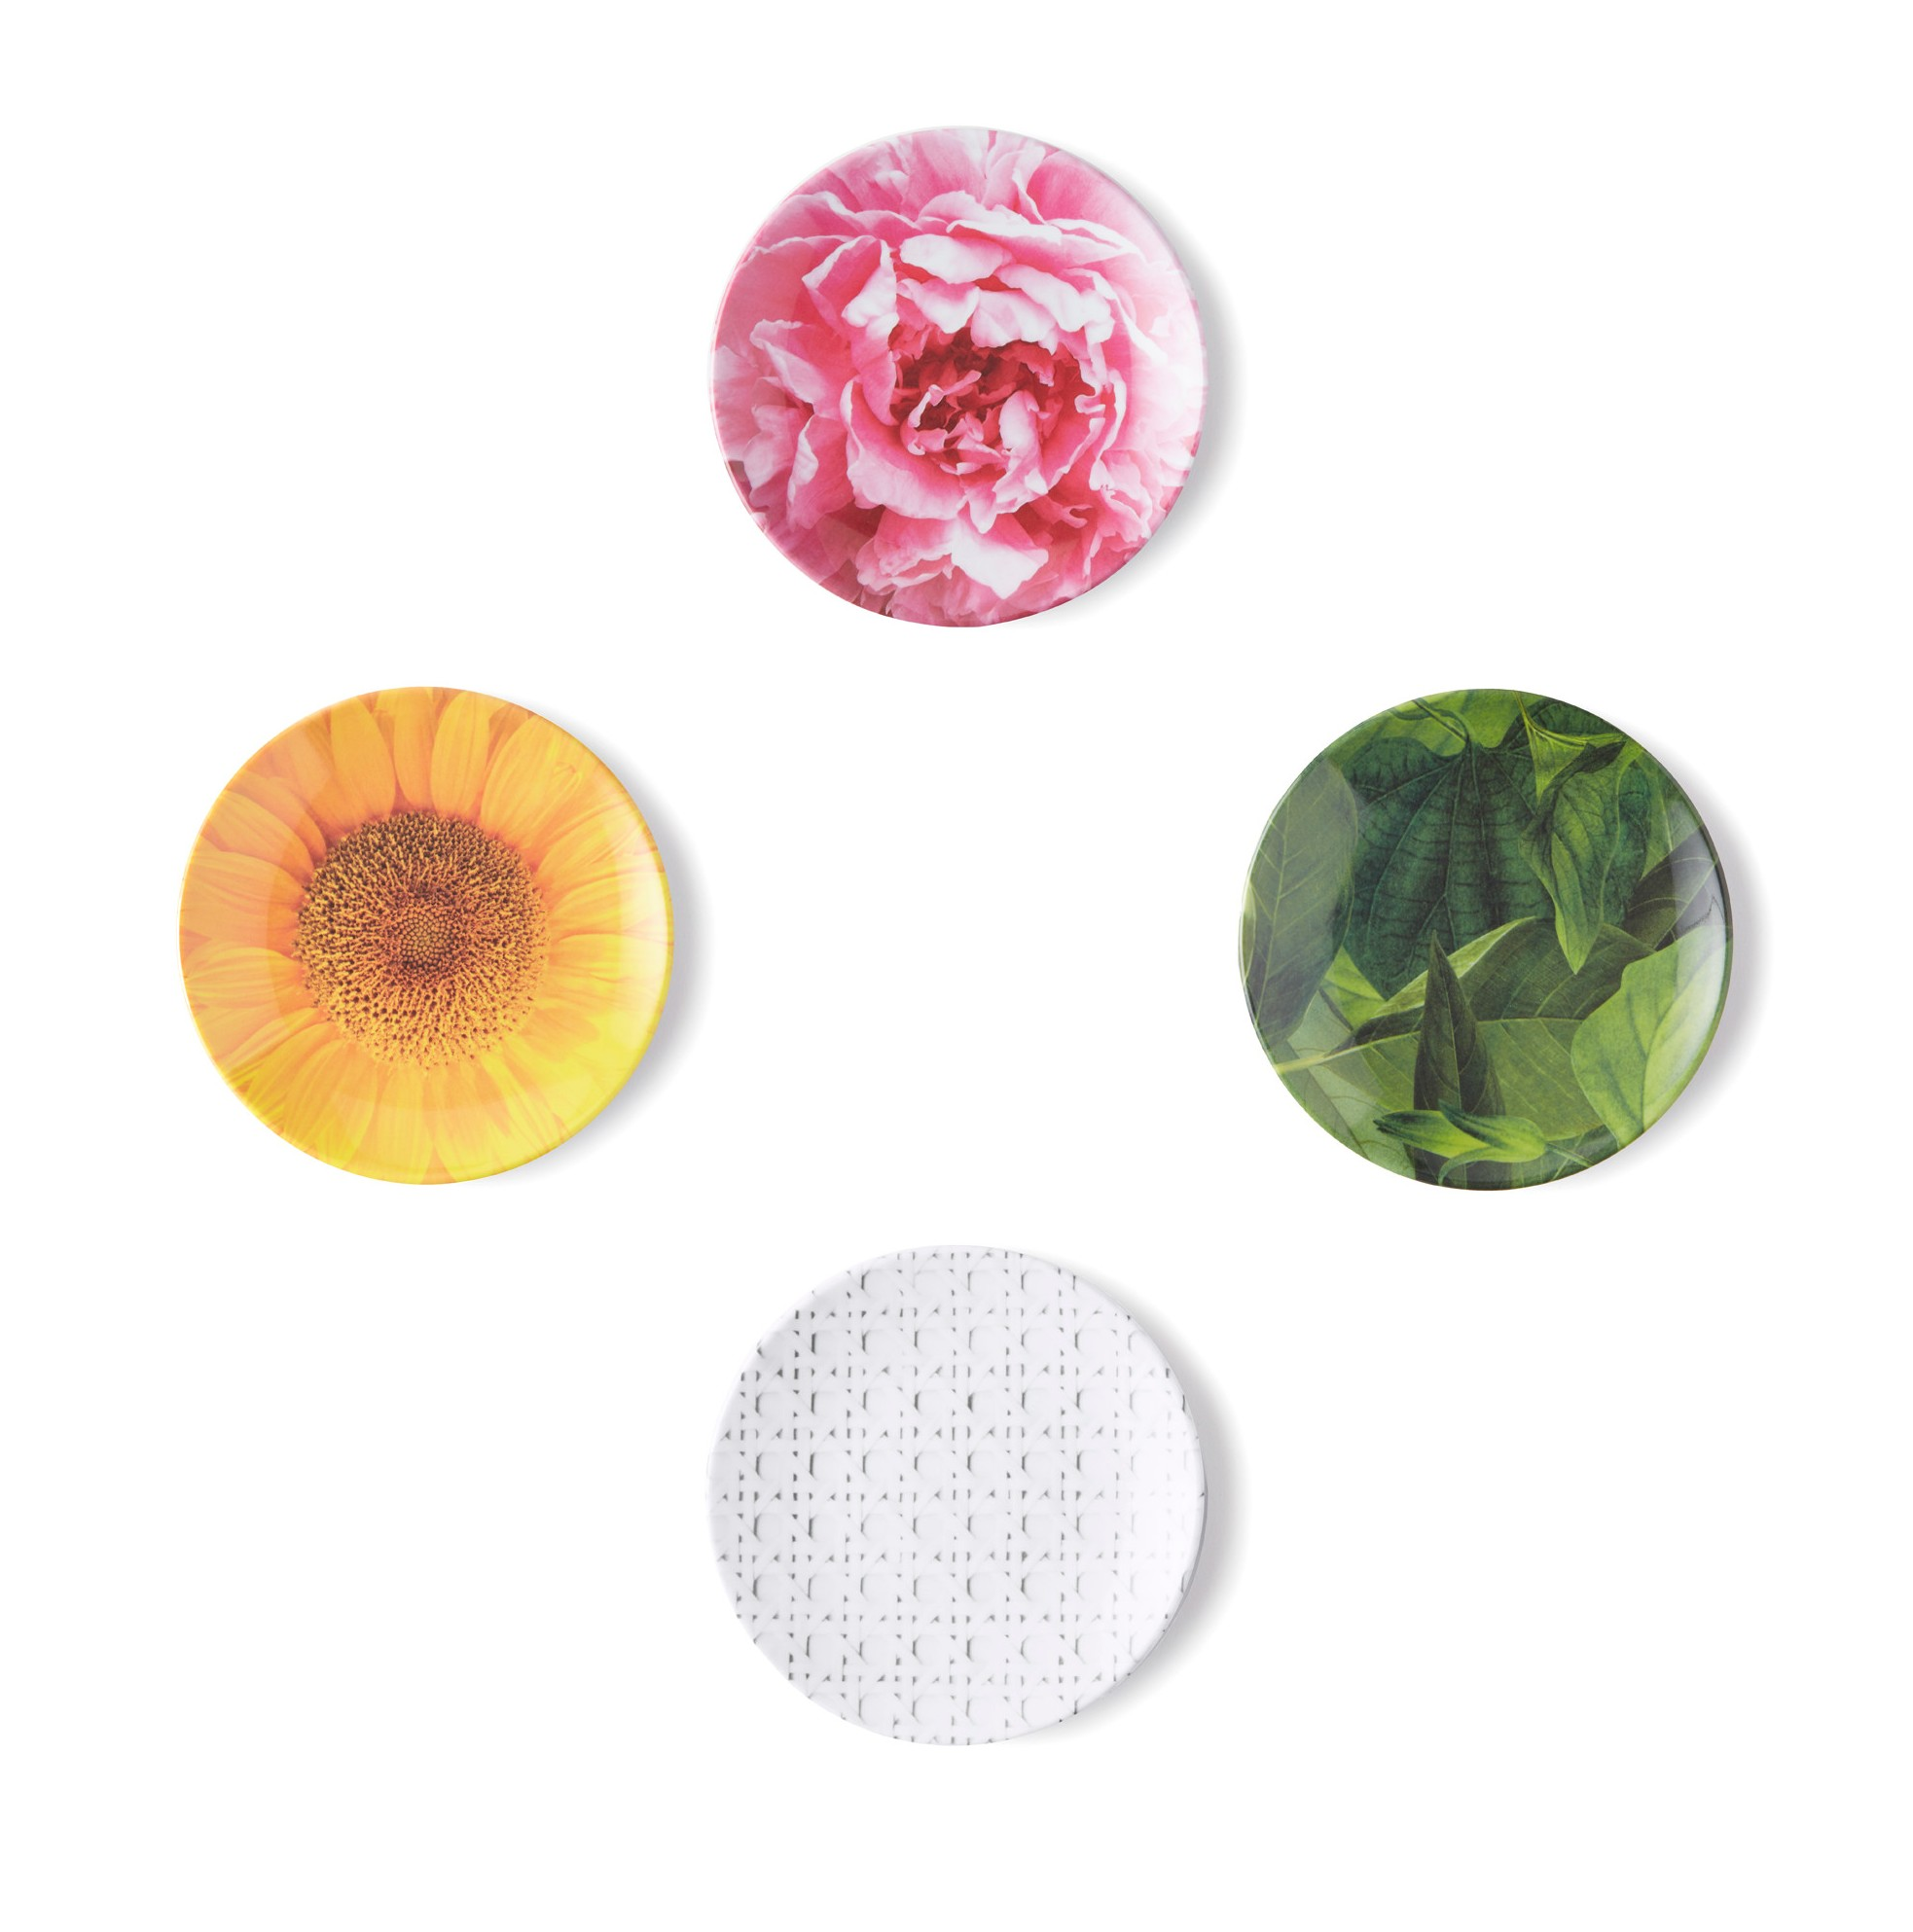 Stumbled on these Kate Spade sets of appetizers Melamine Plates...too cute to pass up